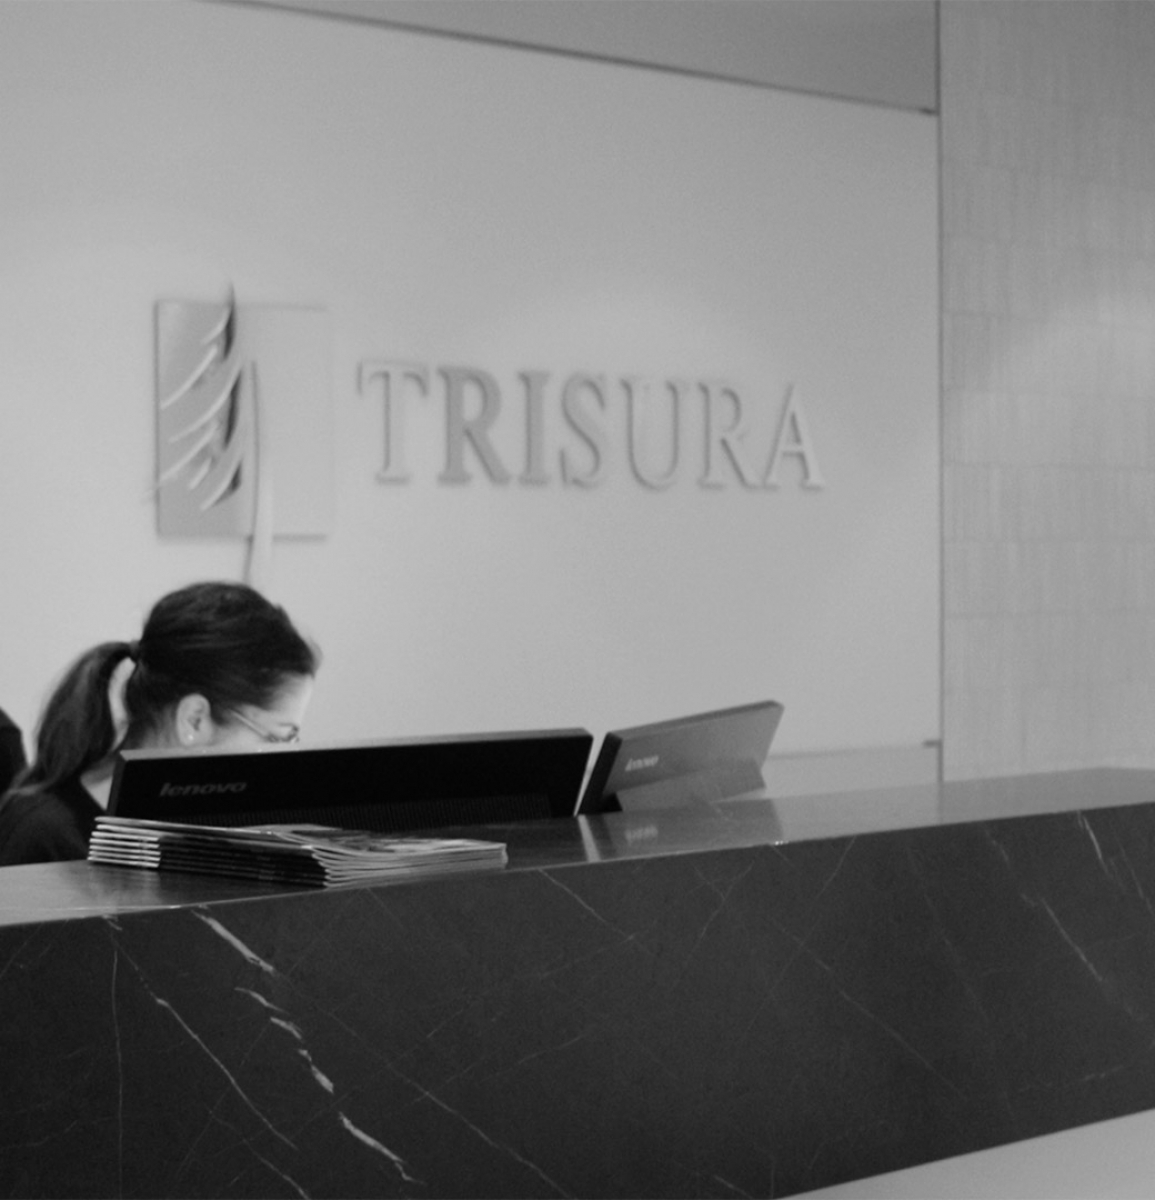 Trisura Guarantee Insurance Company